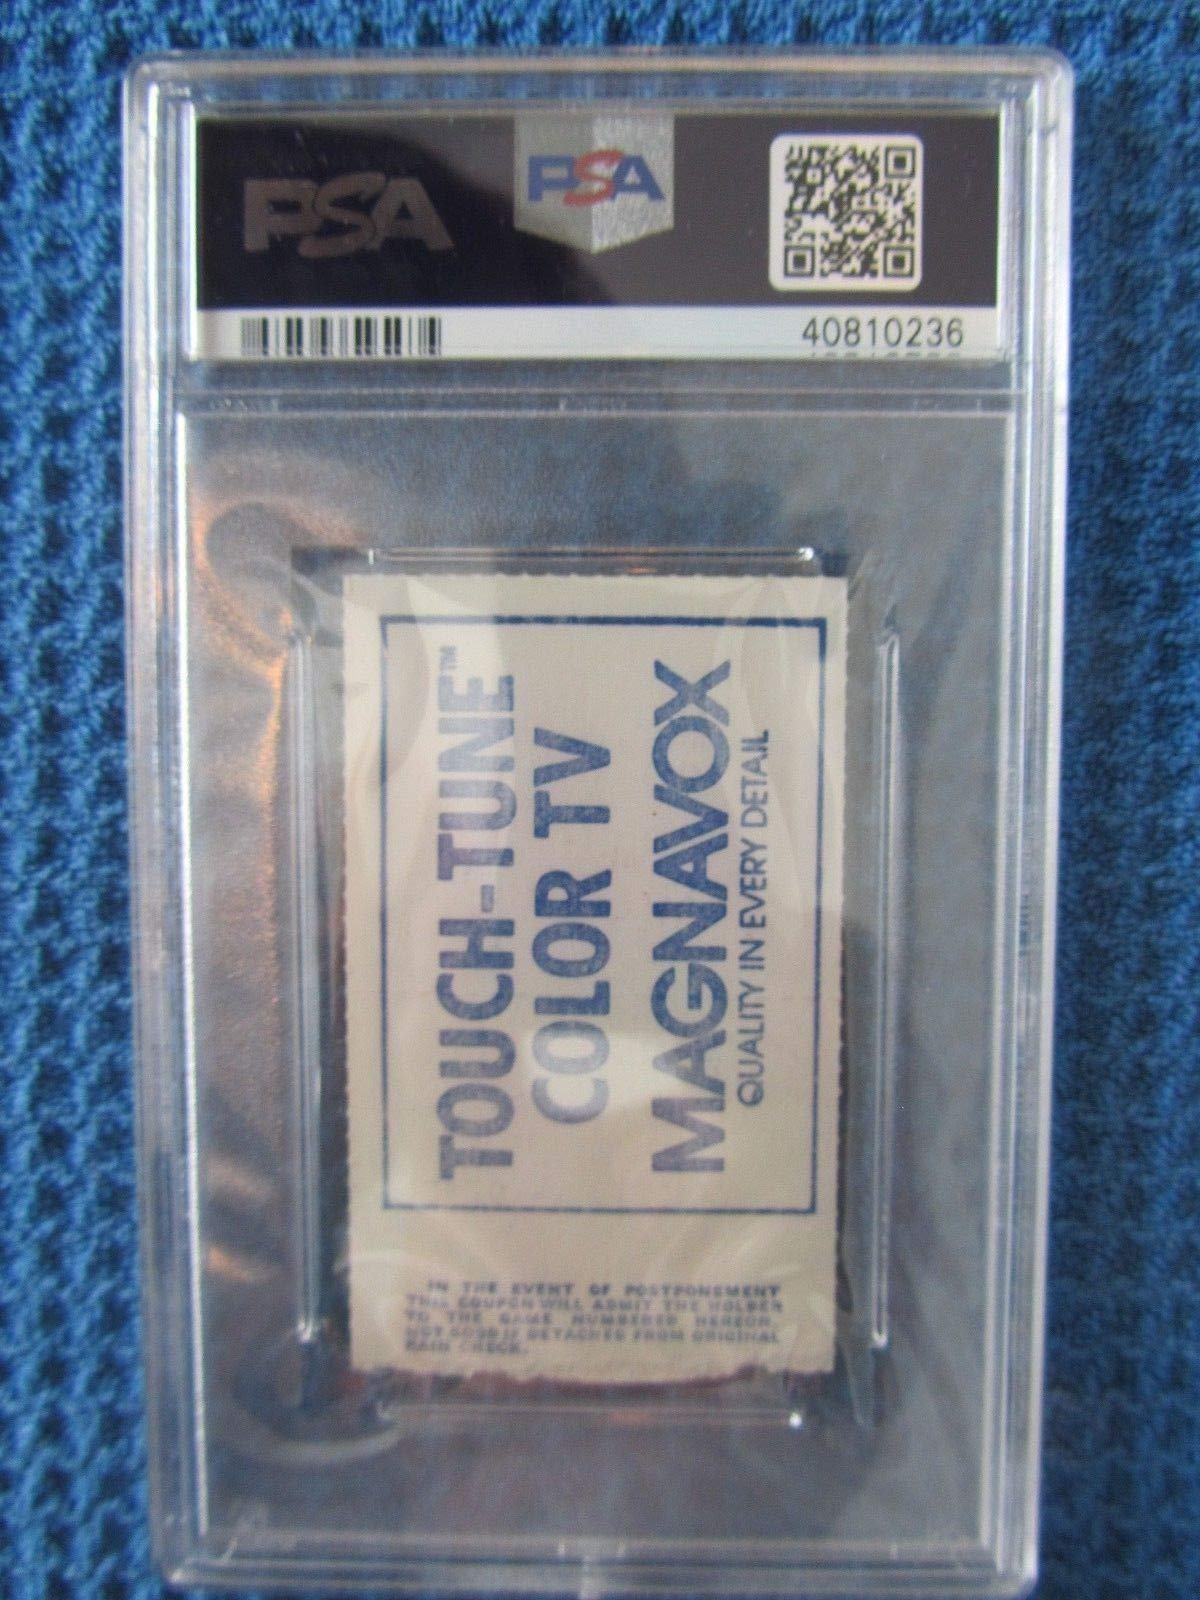 Carl Yastrzemski Autographed Signed 1979 Red Sox 3000Th Hit Ticket PSA/DNA